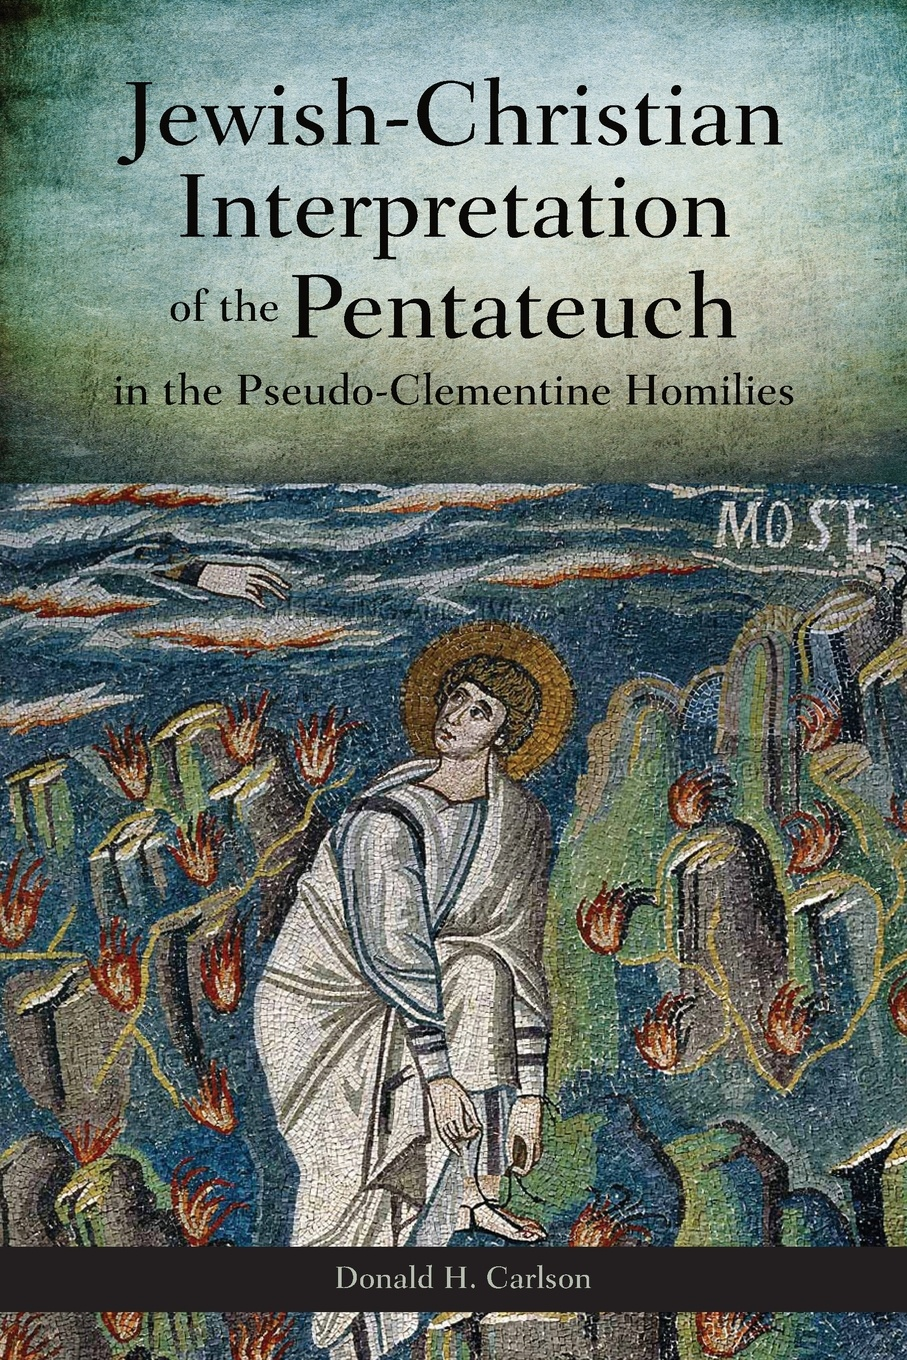 Donald H. Carlson Jewish-Christian Interpretation of the Pentateuch. In the Pseudo-Clementine Homilies